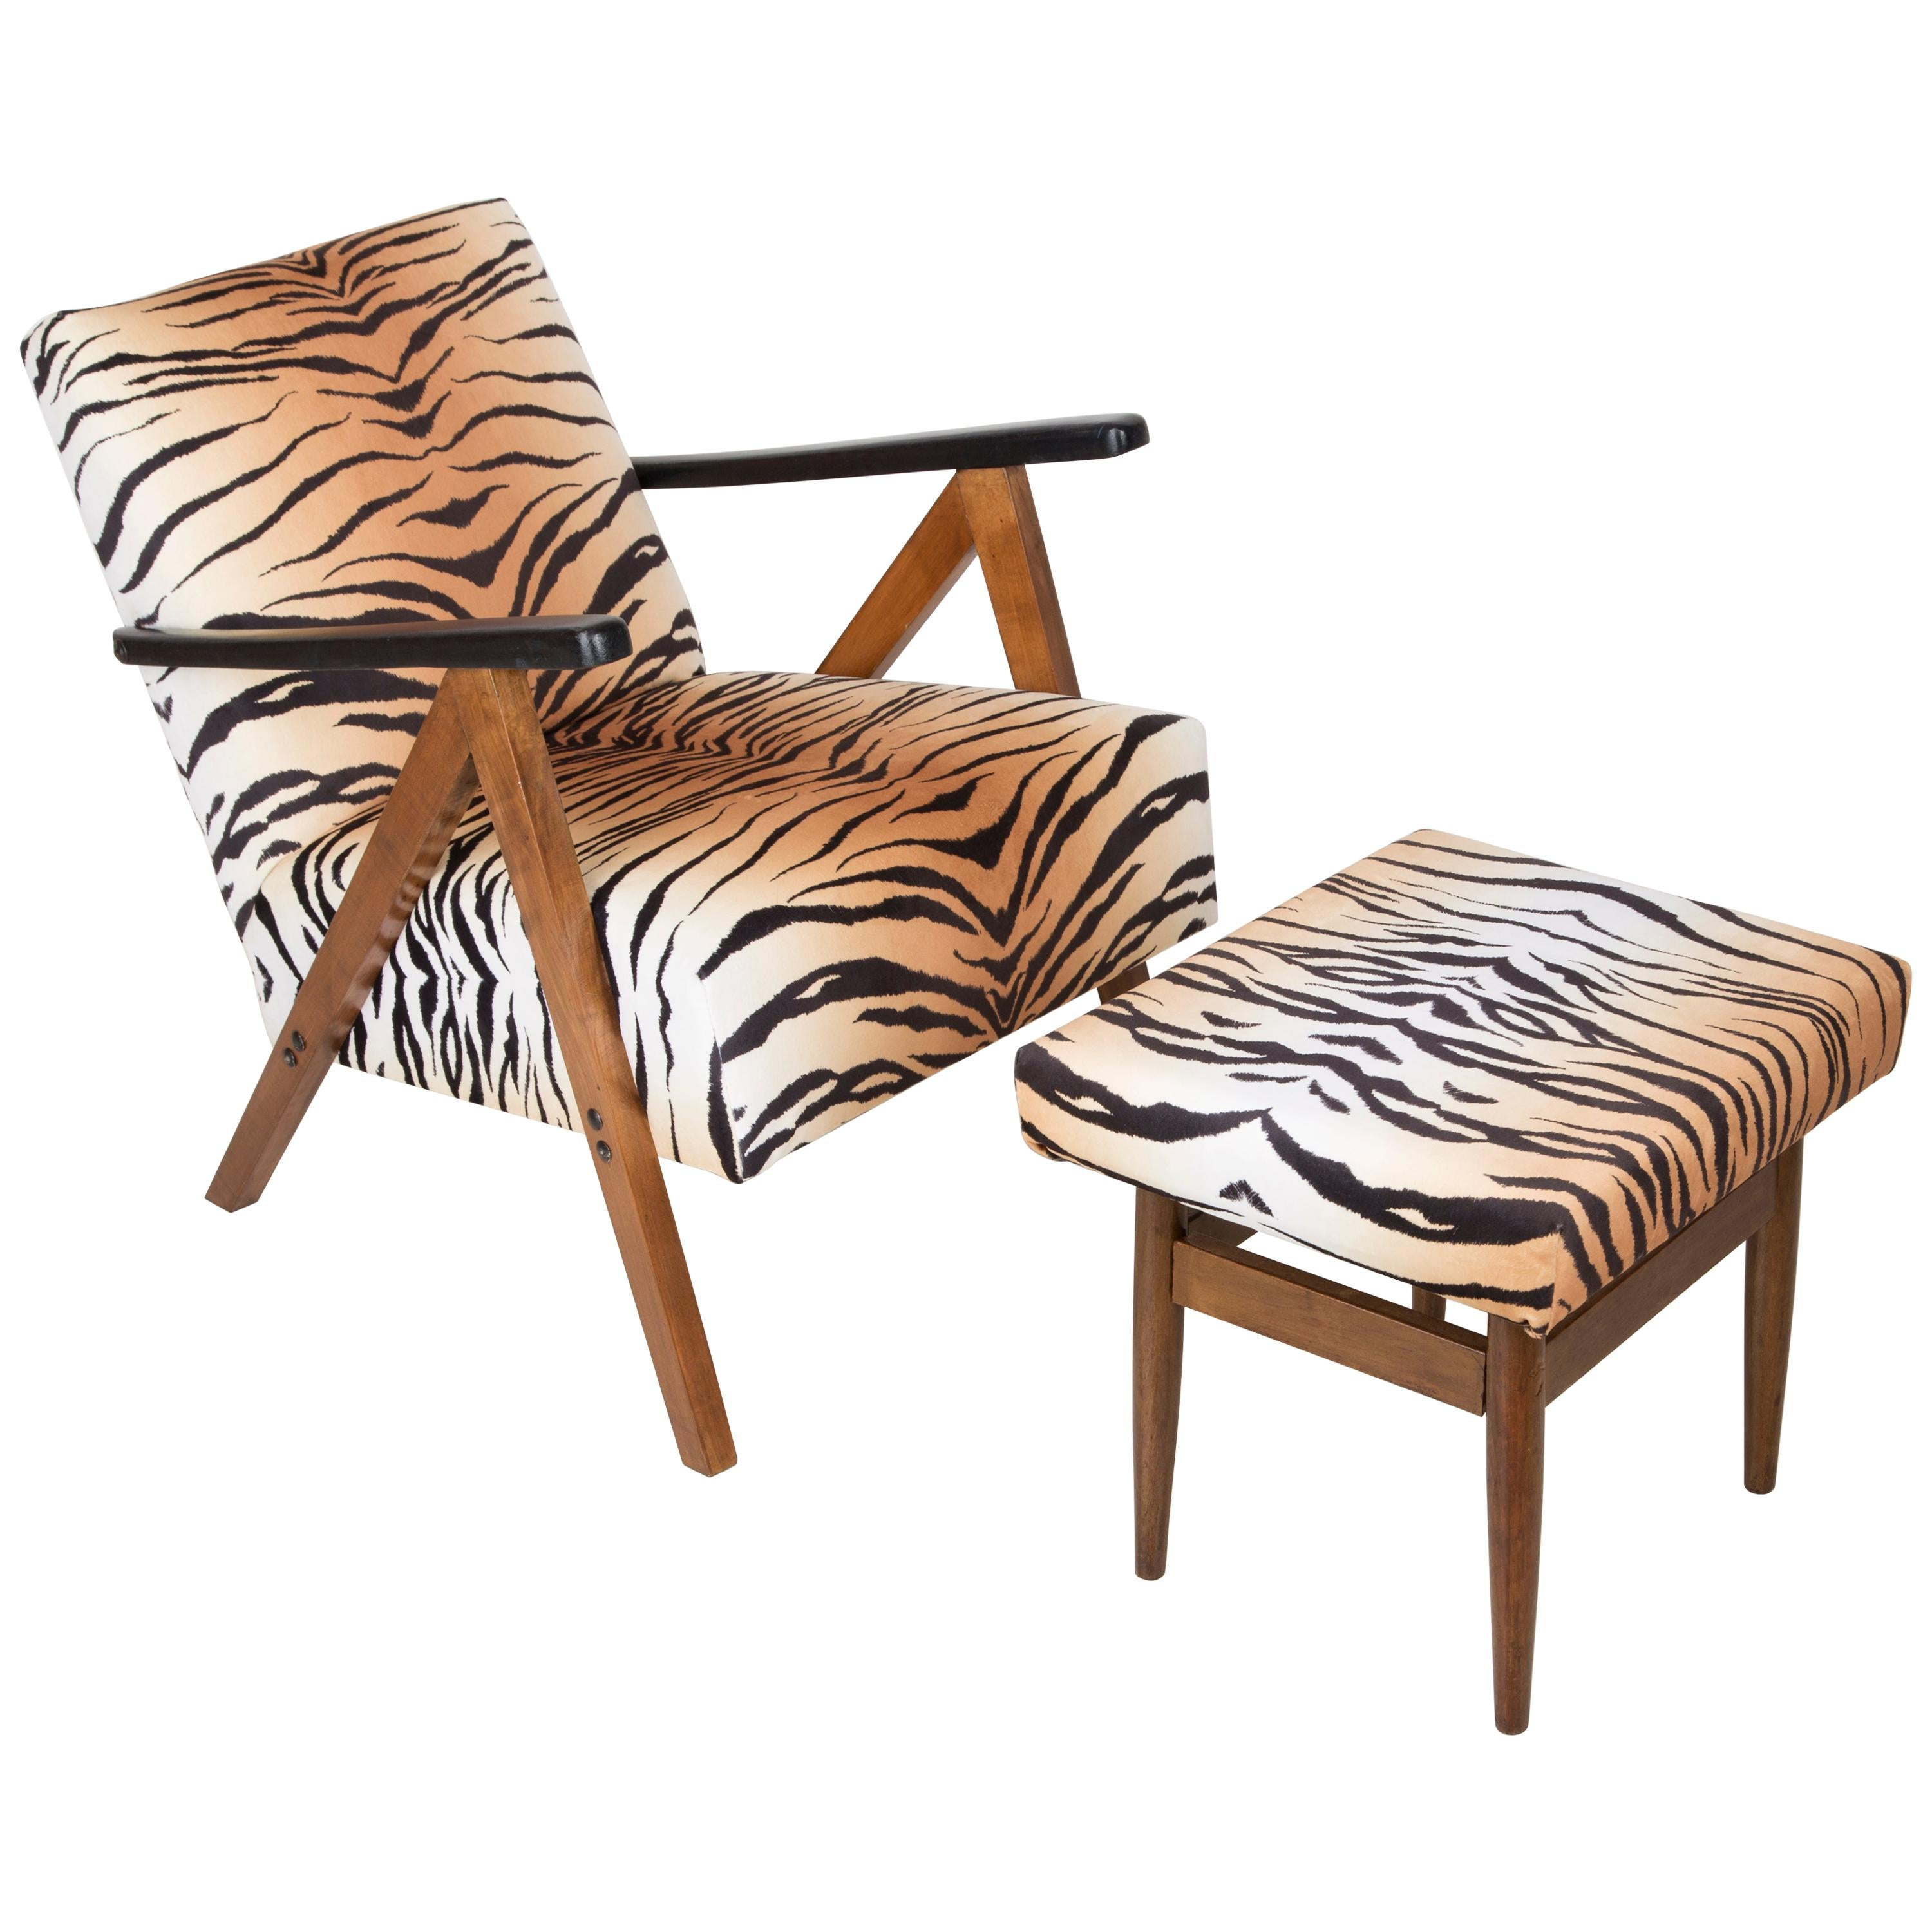 Mid-Century Modern Tiger Print Armchair and Stool, 1960s, Germany